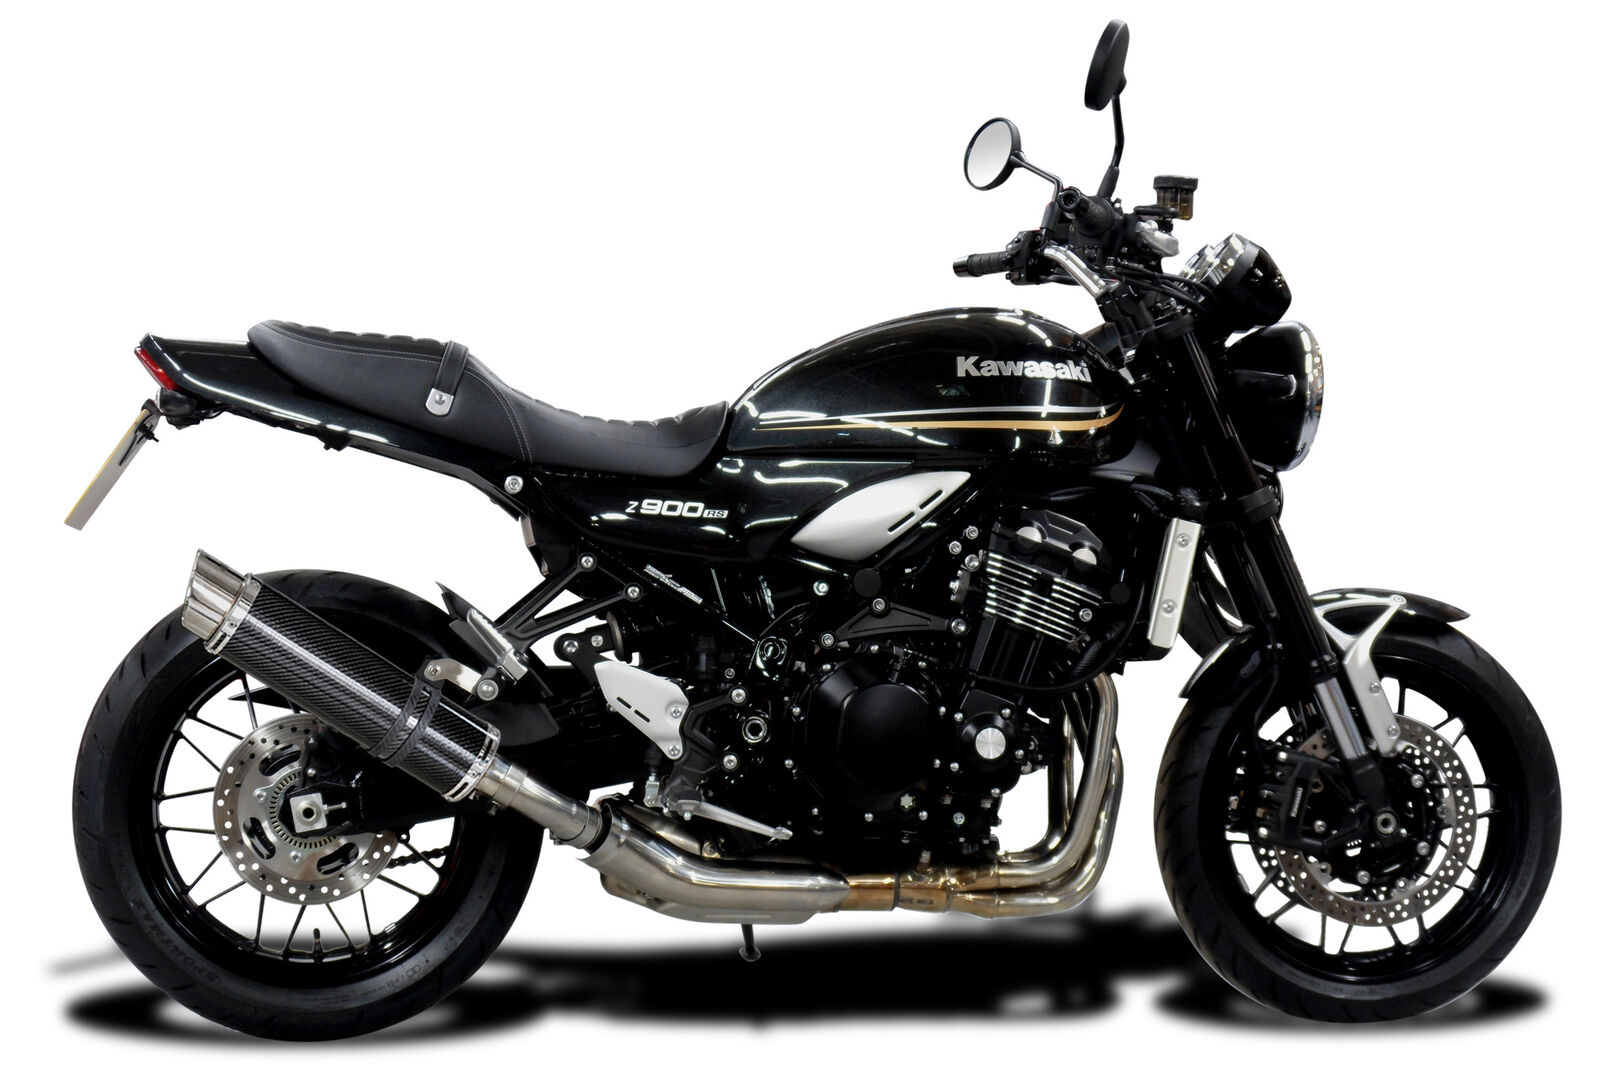 Details about Kawasaki Z900RS Delkevic Aftermarket 14